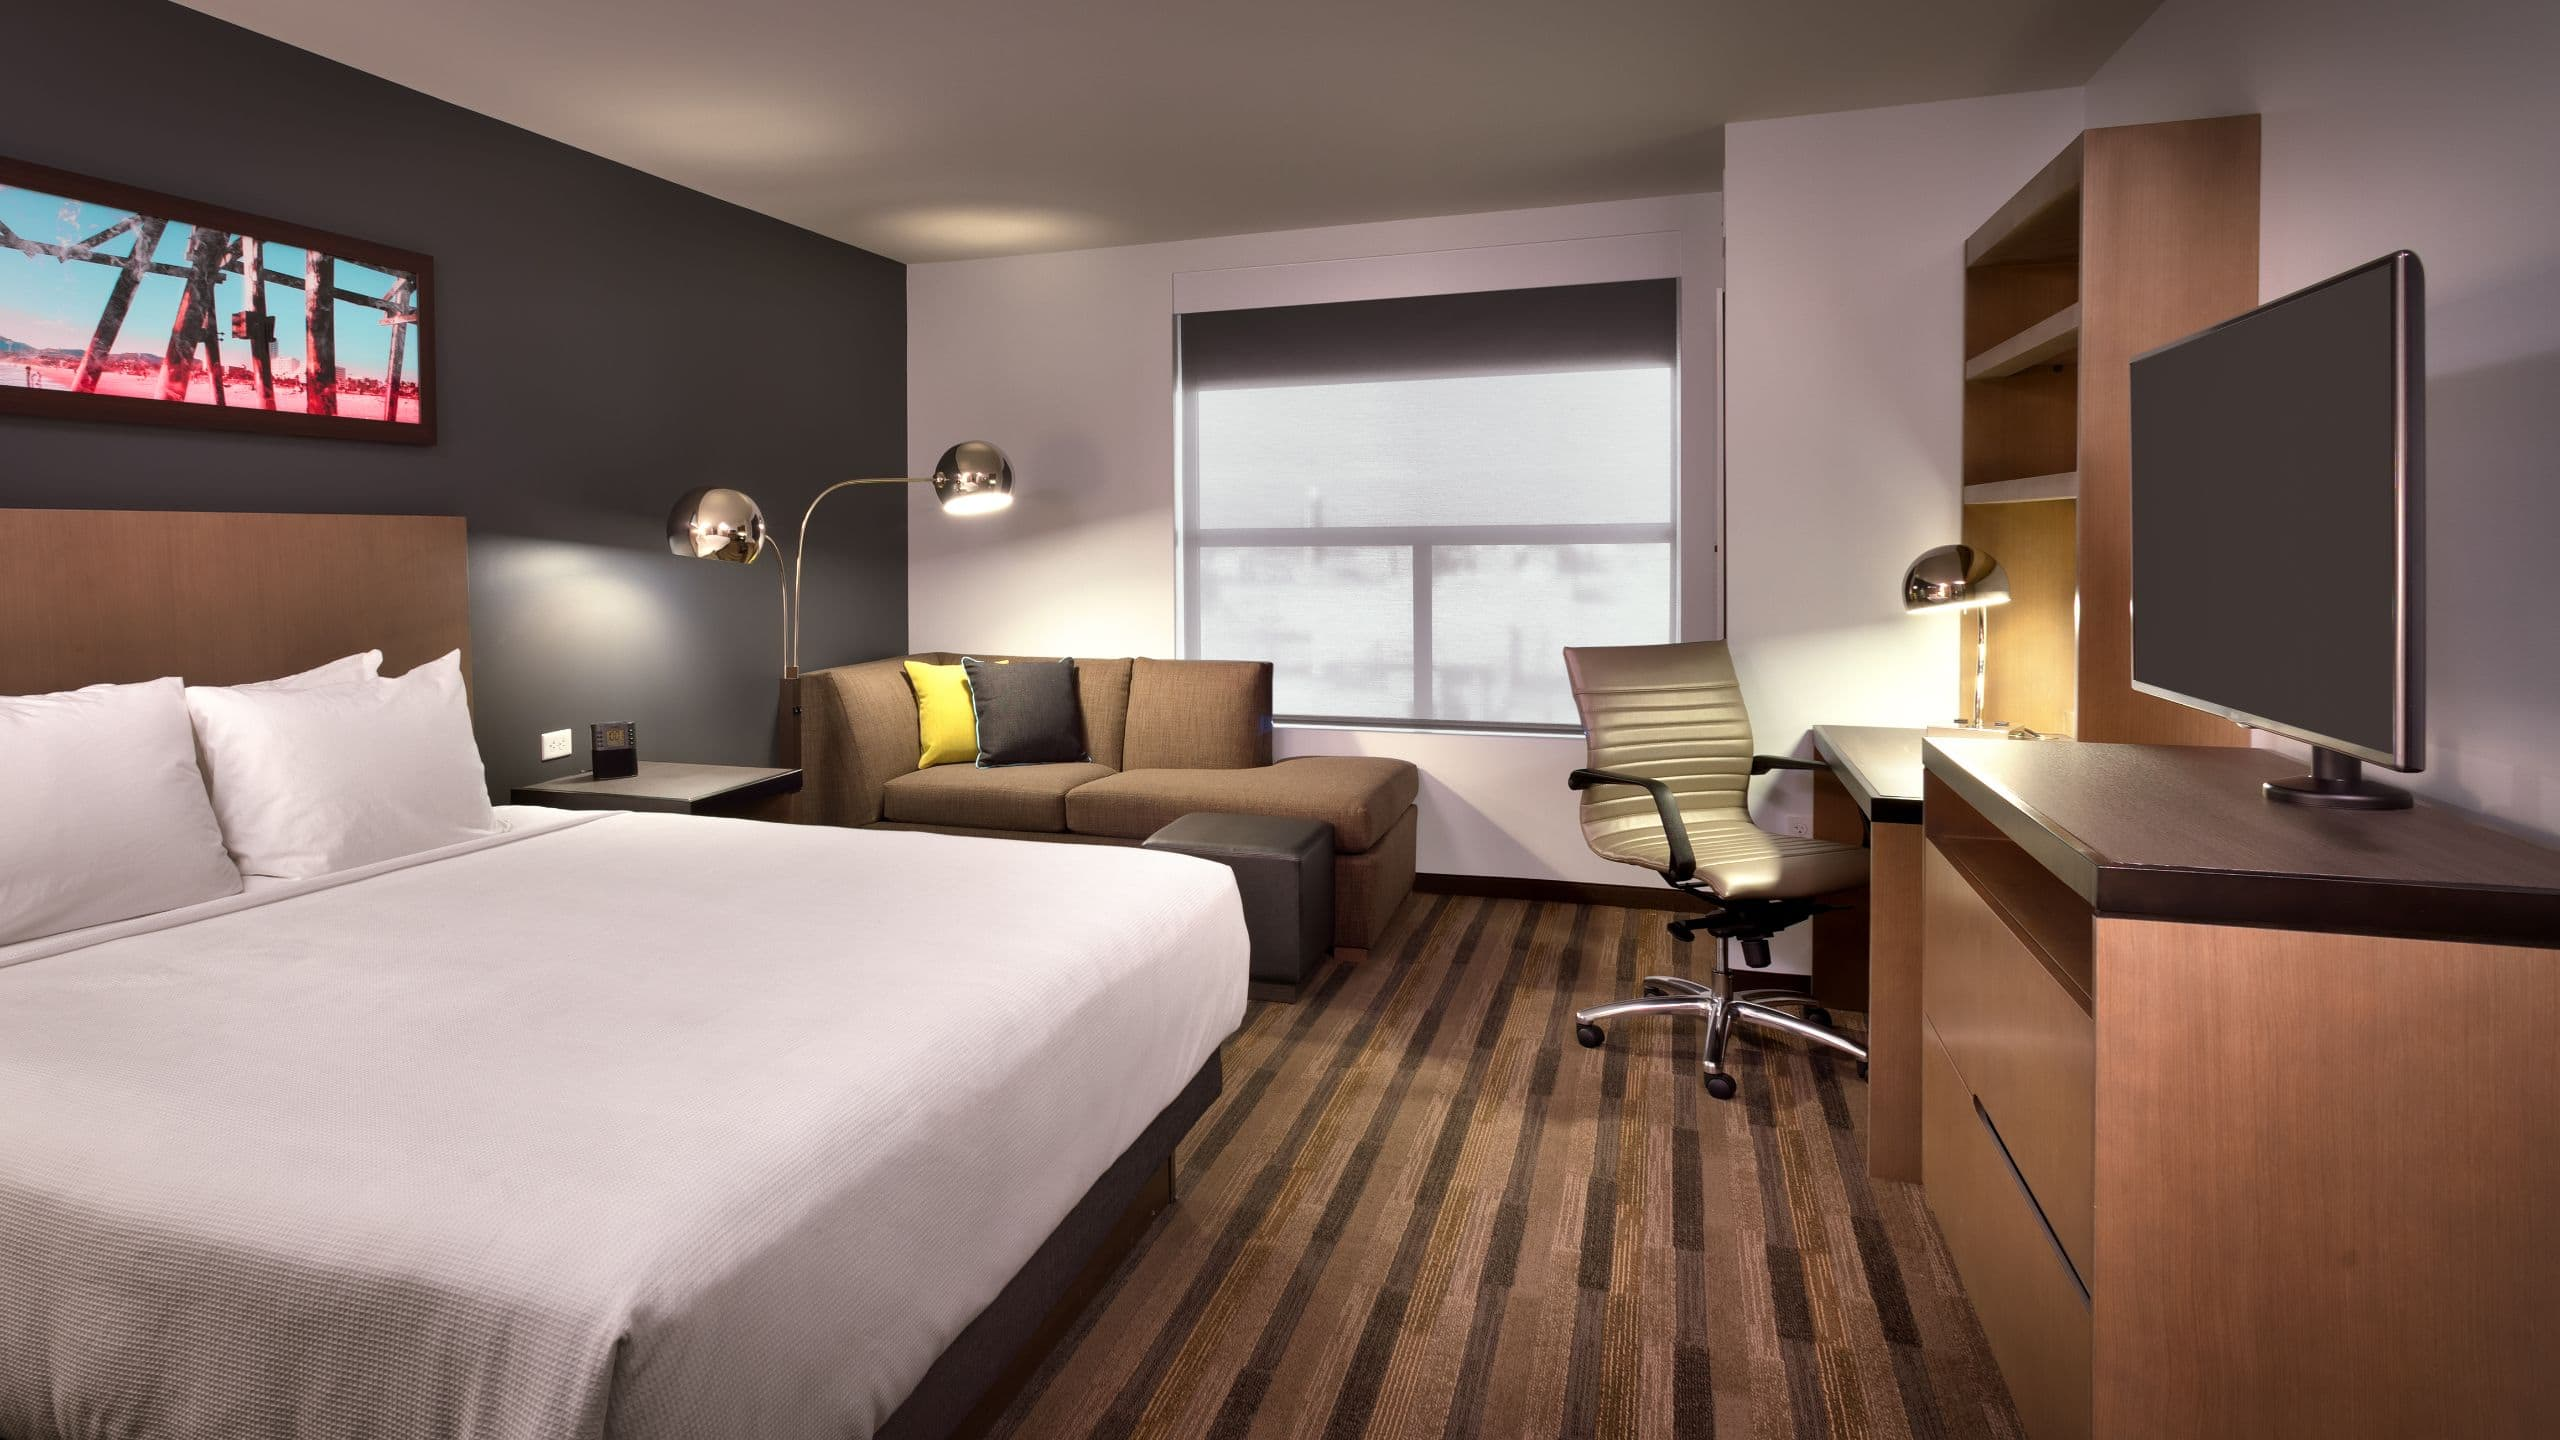 Hotel Rooms in Salt Lake City | Hyatt House Salt Lake City ...